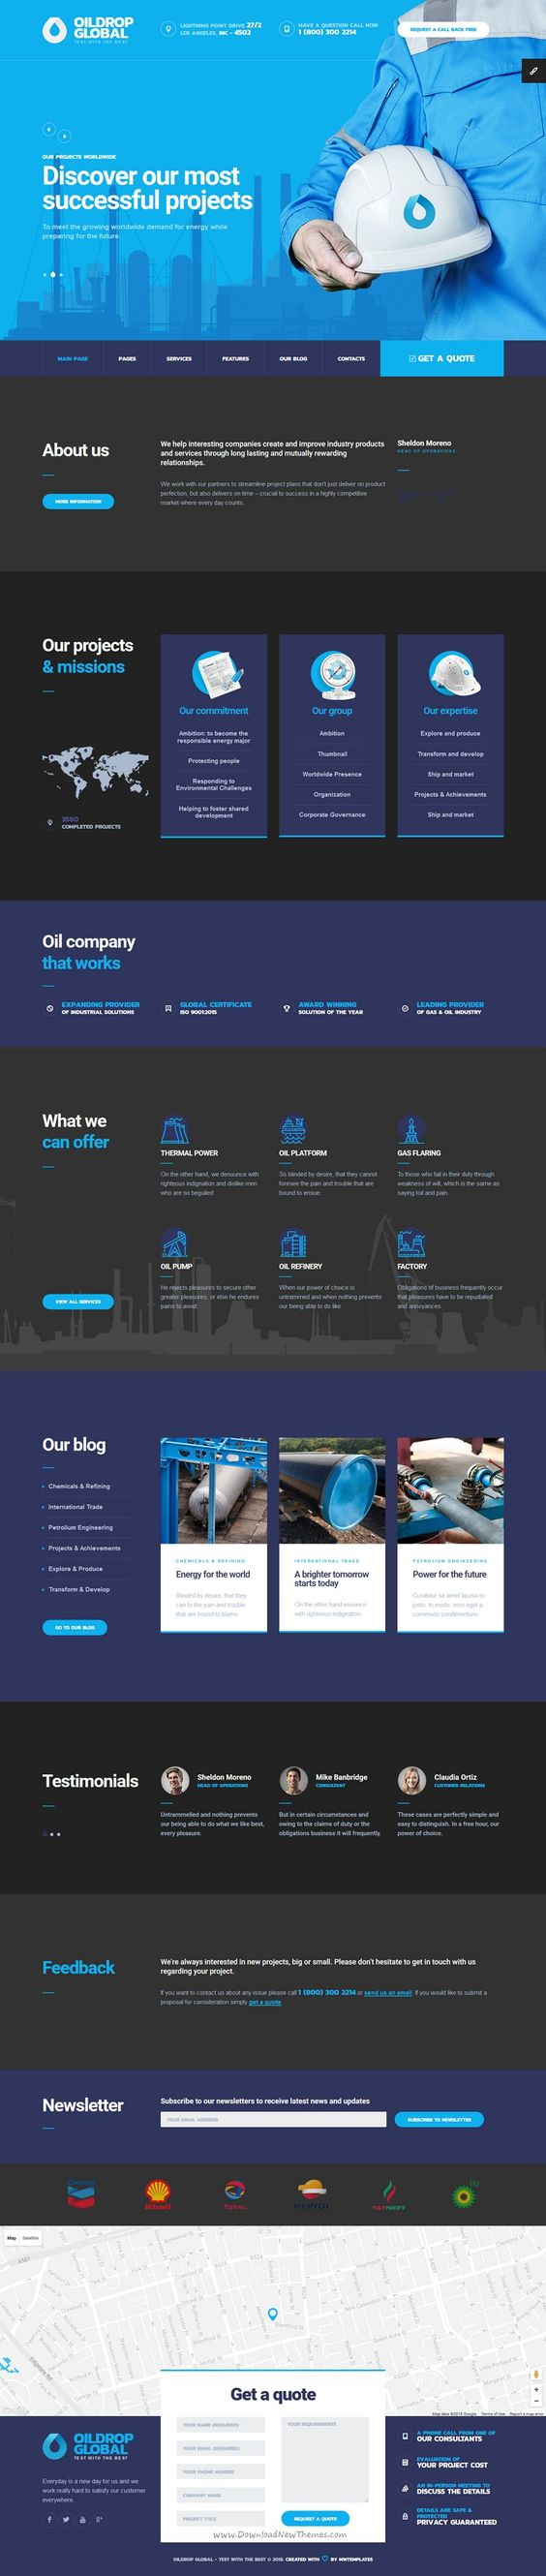 Website Design & Branding for<br> the Construction & Trade Industry